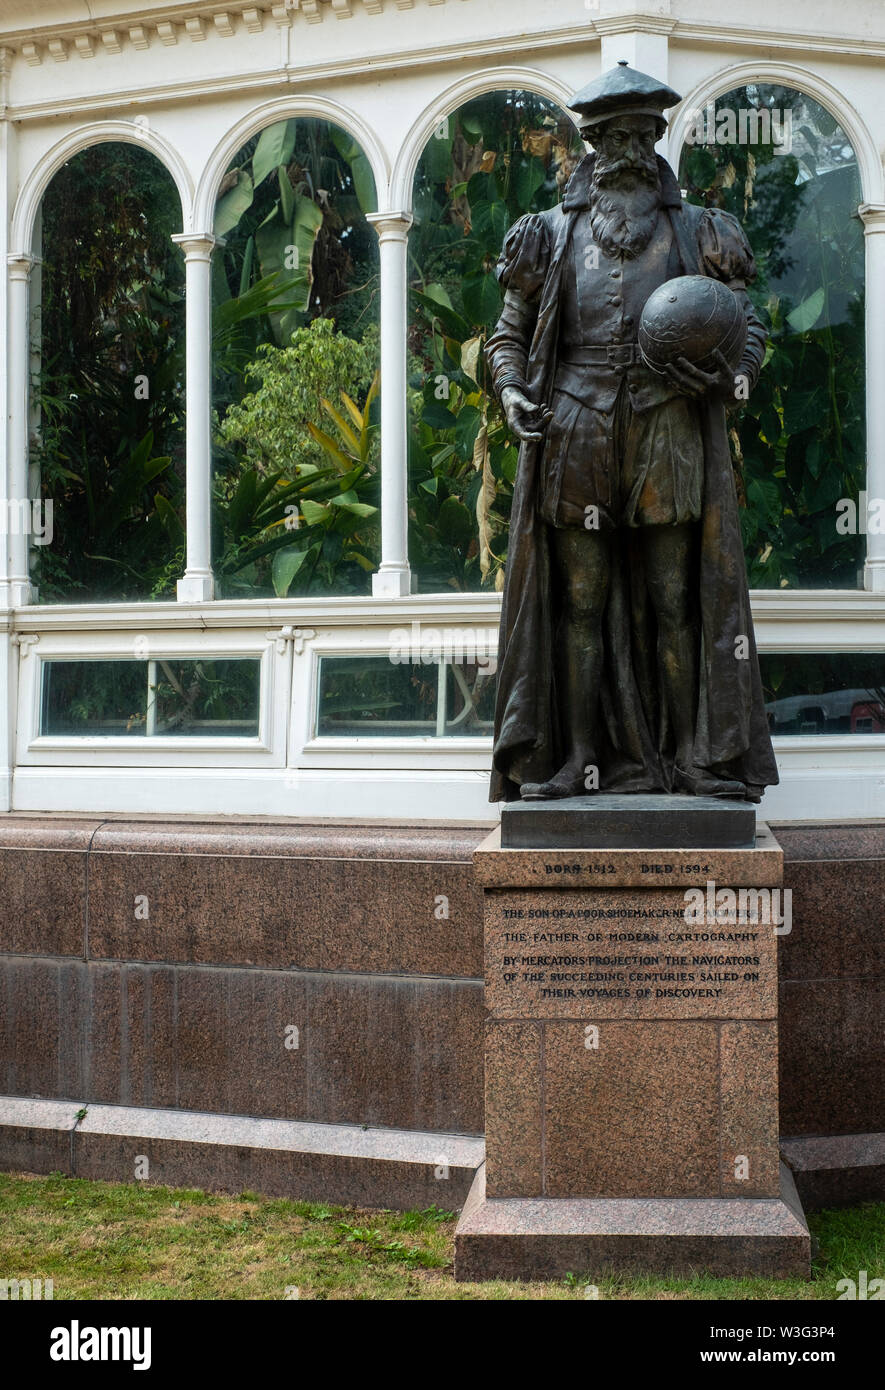 Statue of Gerardus Mercator, the father of modern cartography and inventor of the projection map, outside the Palm House at Sefton Park, Liverpool (UK - Stock Image